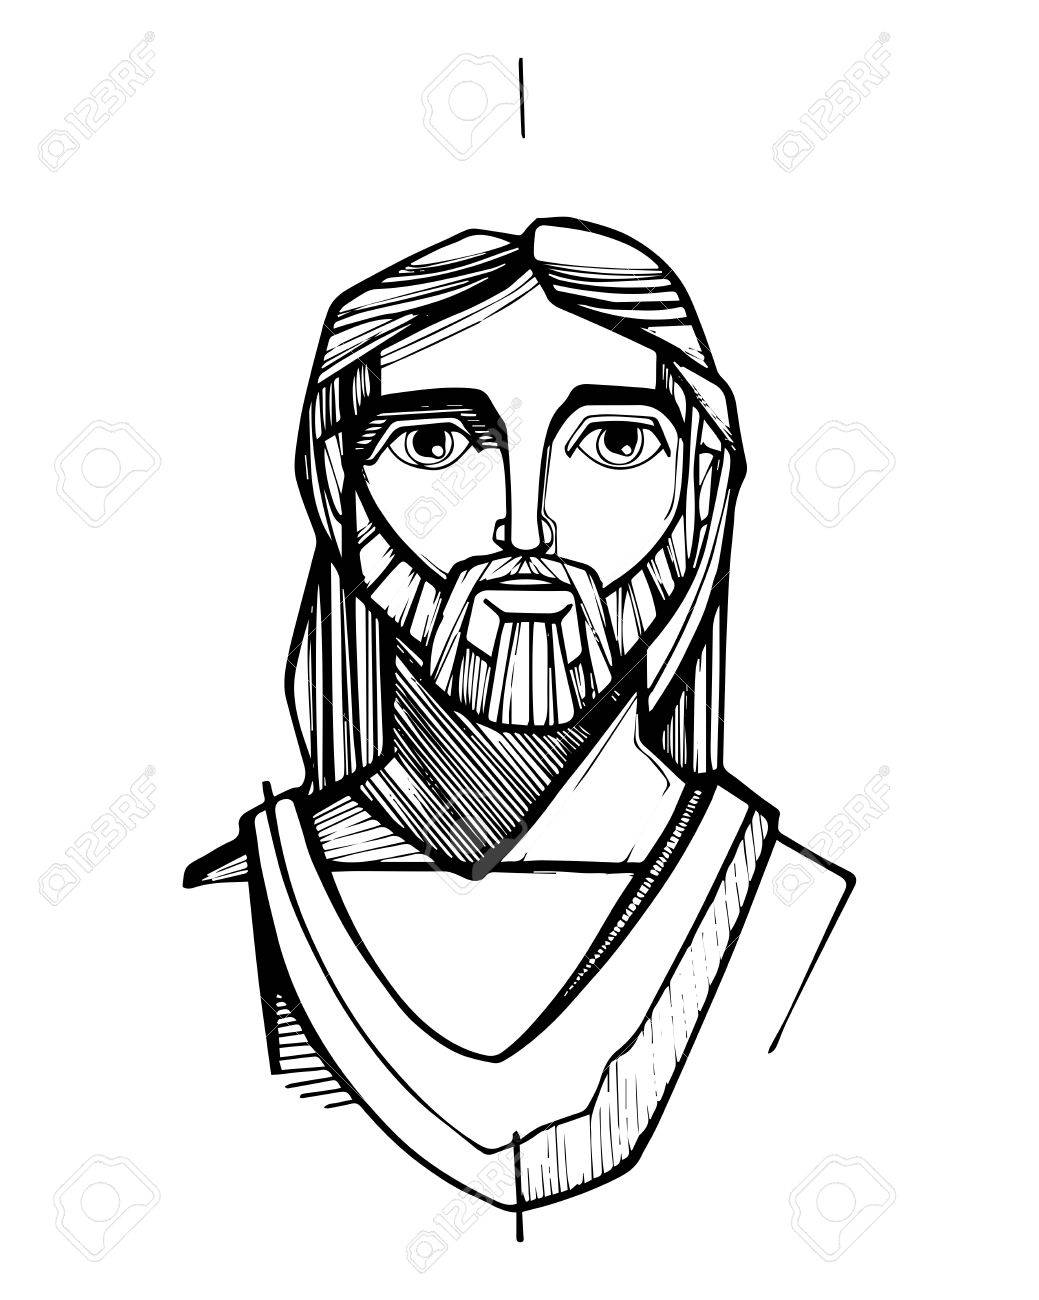 1039x1300 Hand Drawn Vector Illustration Or Drawing Of Jesus Christ Face